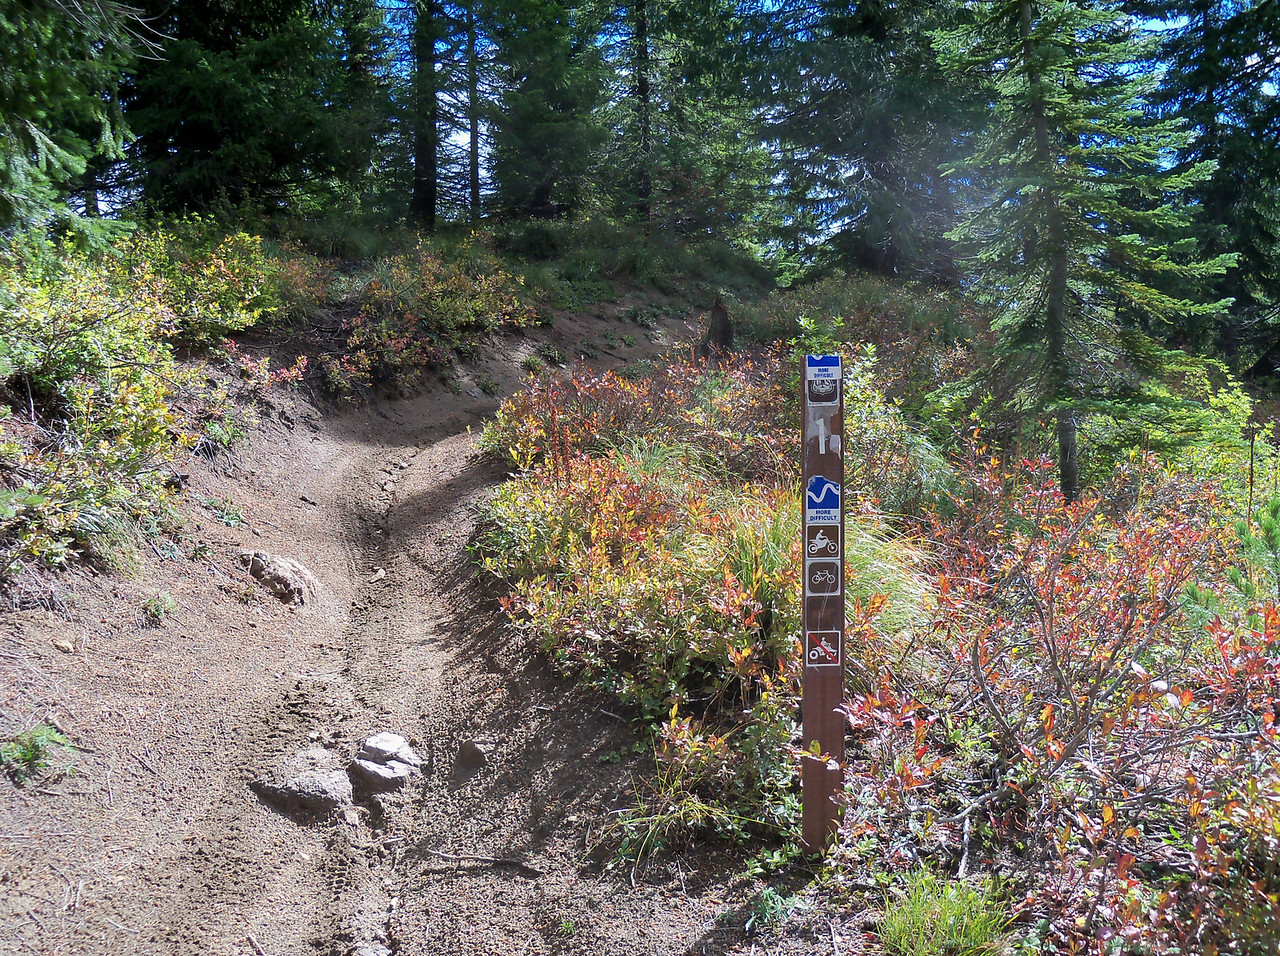 #1 Boundary Trail in the Dark Divide